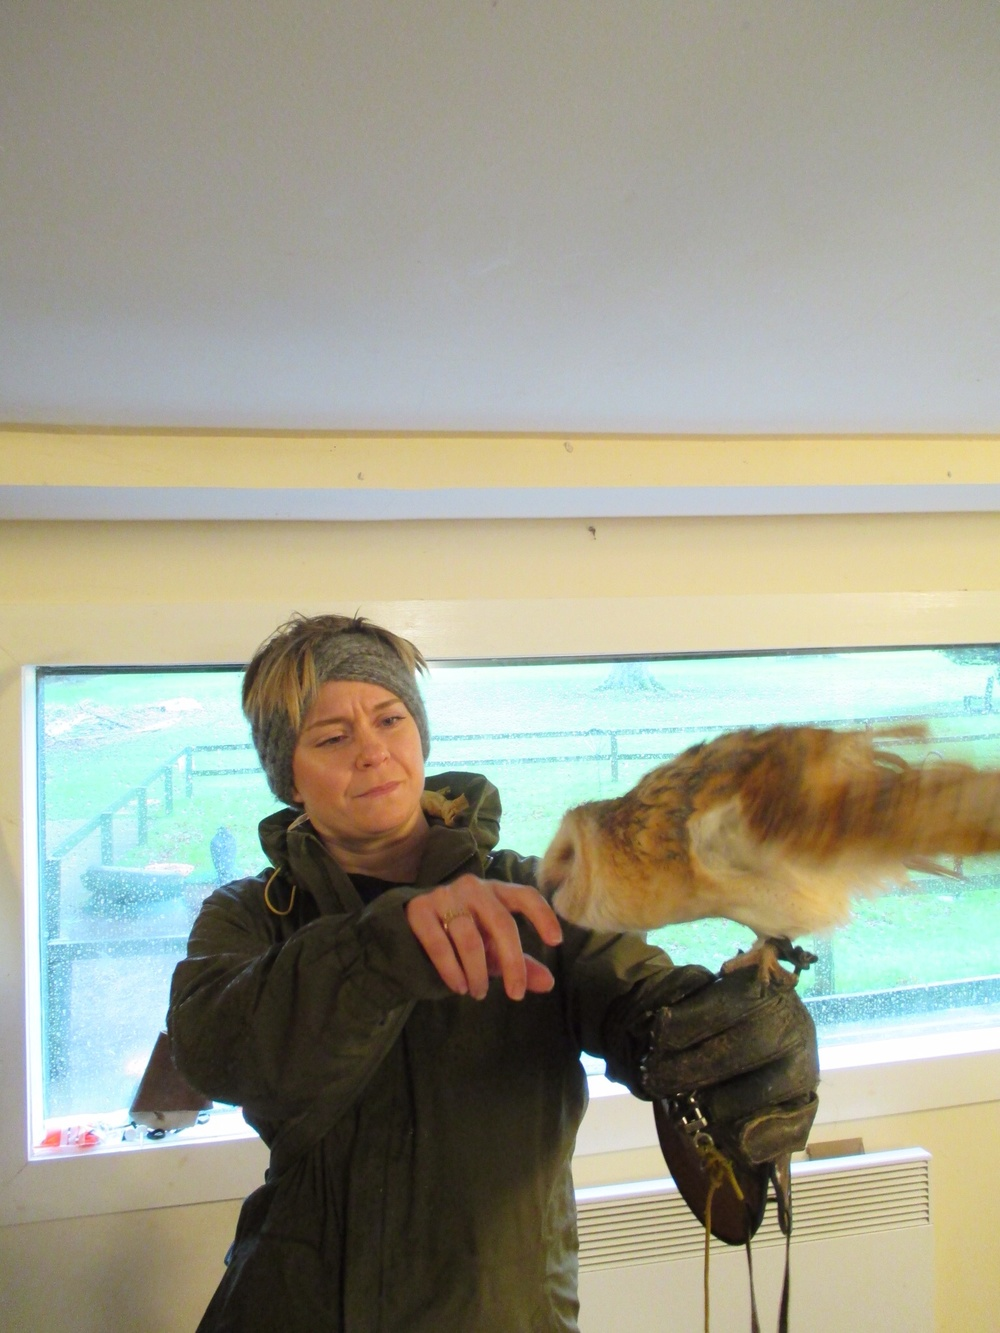 This barn owl gently nibbled away at my fingers, checking for something good to eat.